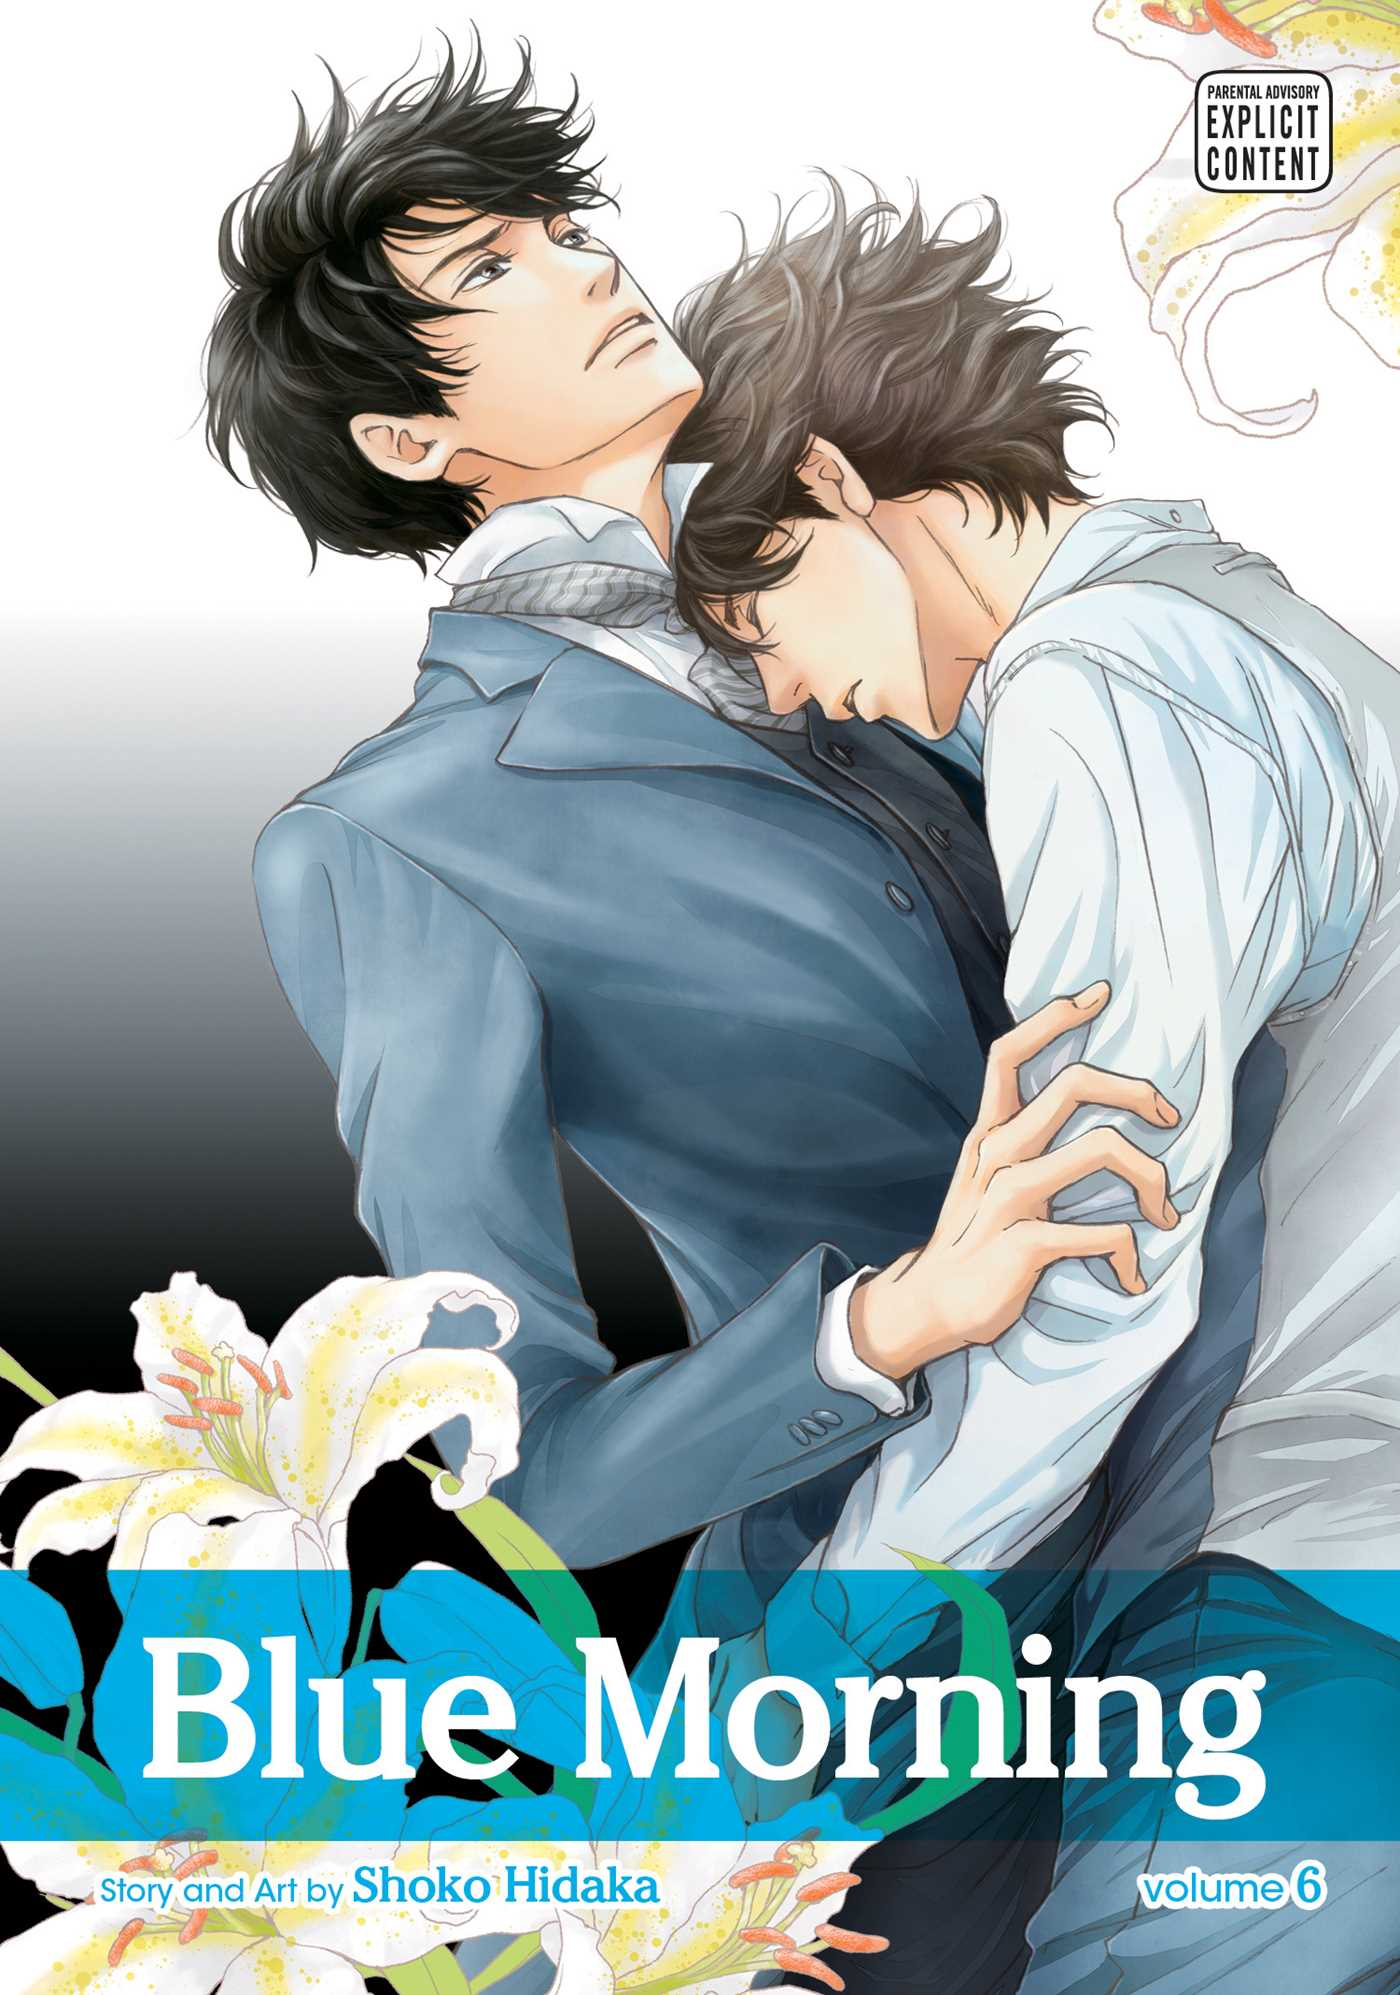 Blue morning vol 6 9781421588063 hr